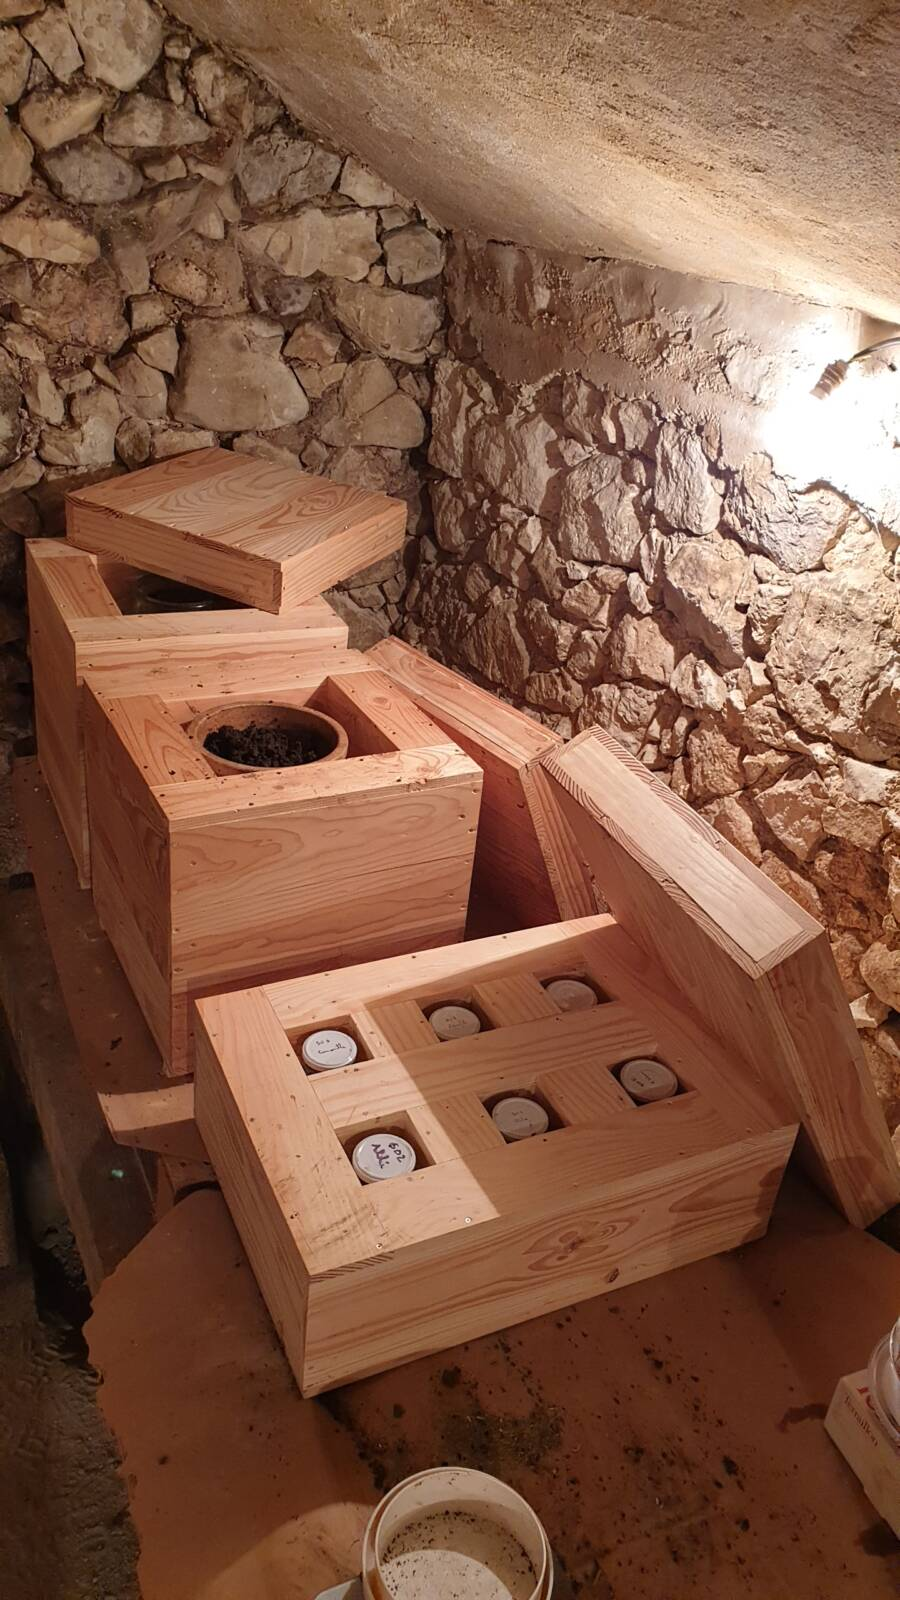 storage cellar for biodynamic preparations